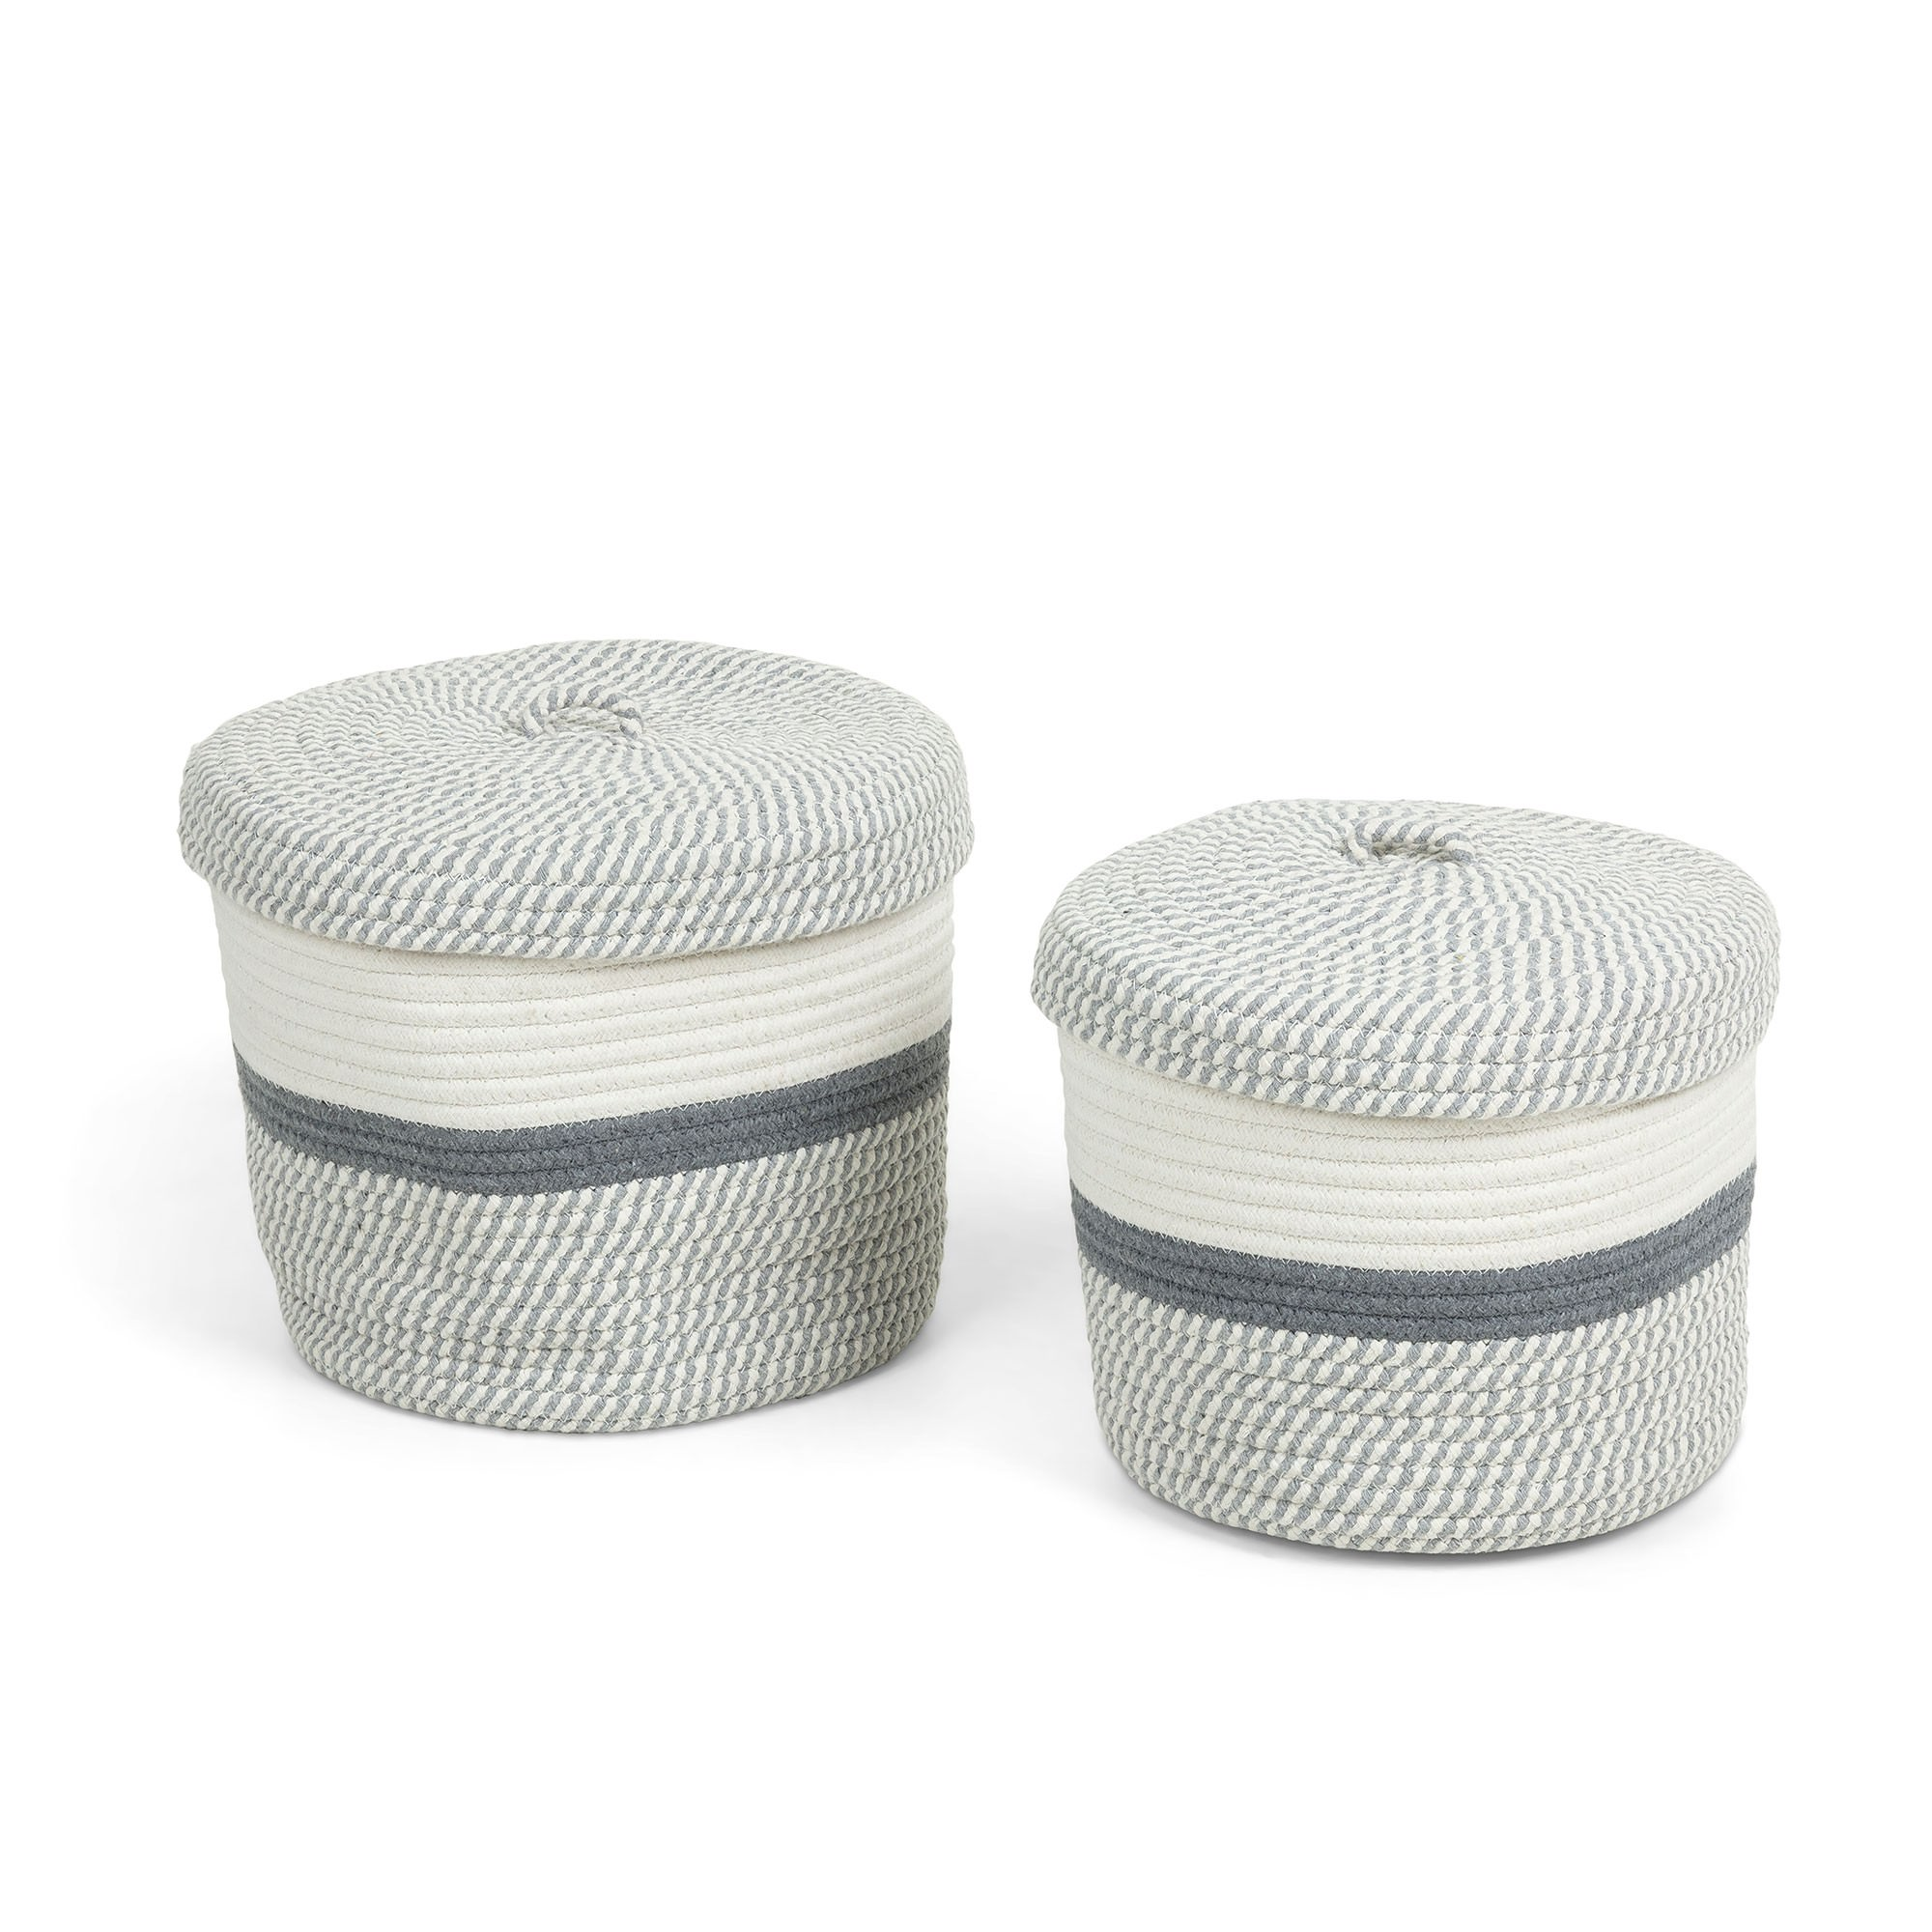 Marlon 2 Piece Rope Hamper Set